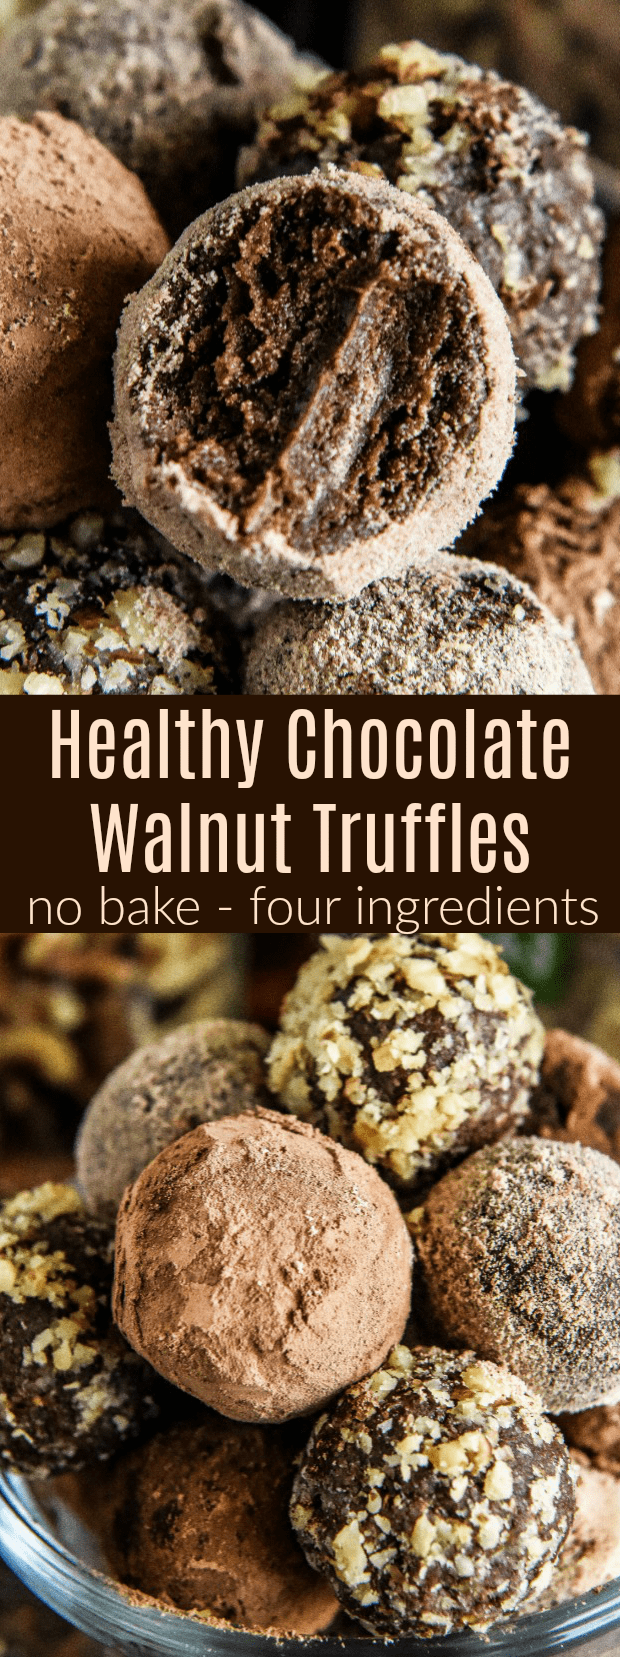 Healthy Chocolate Truffles Recipe